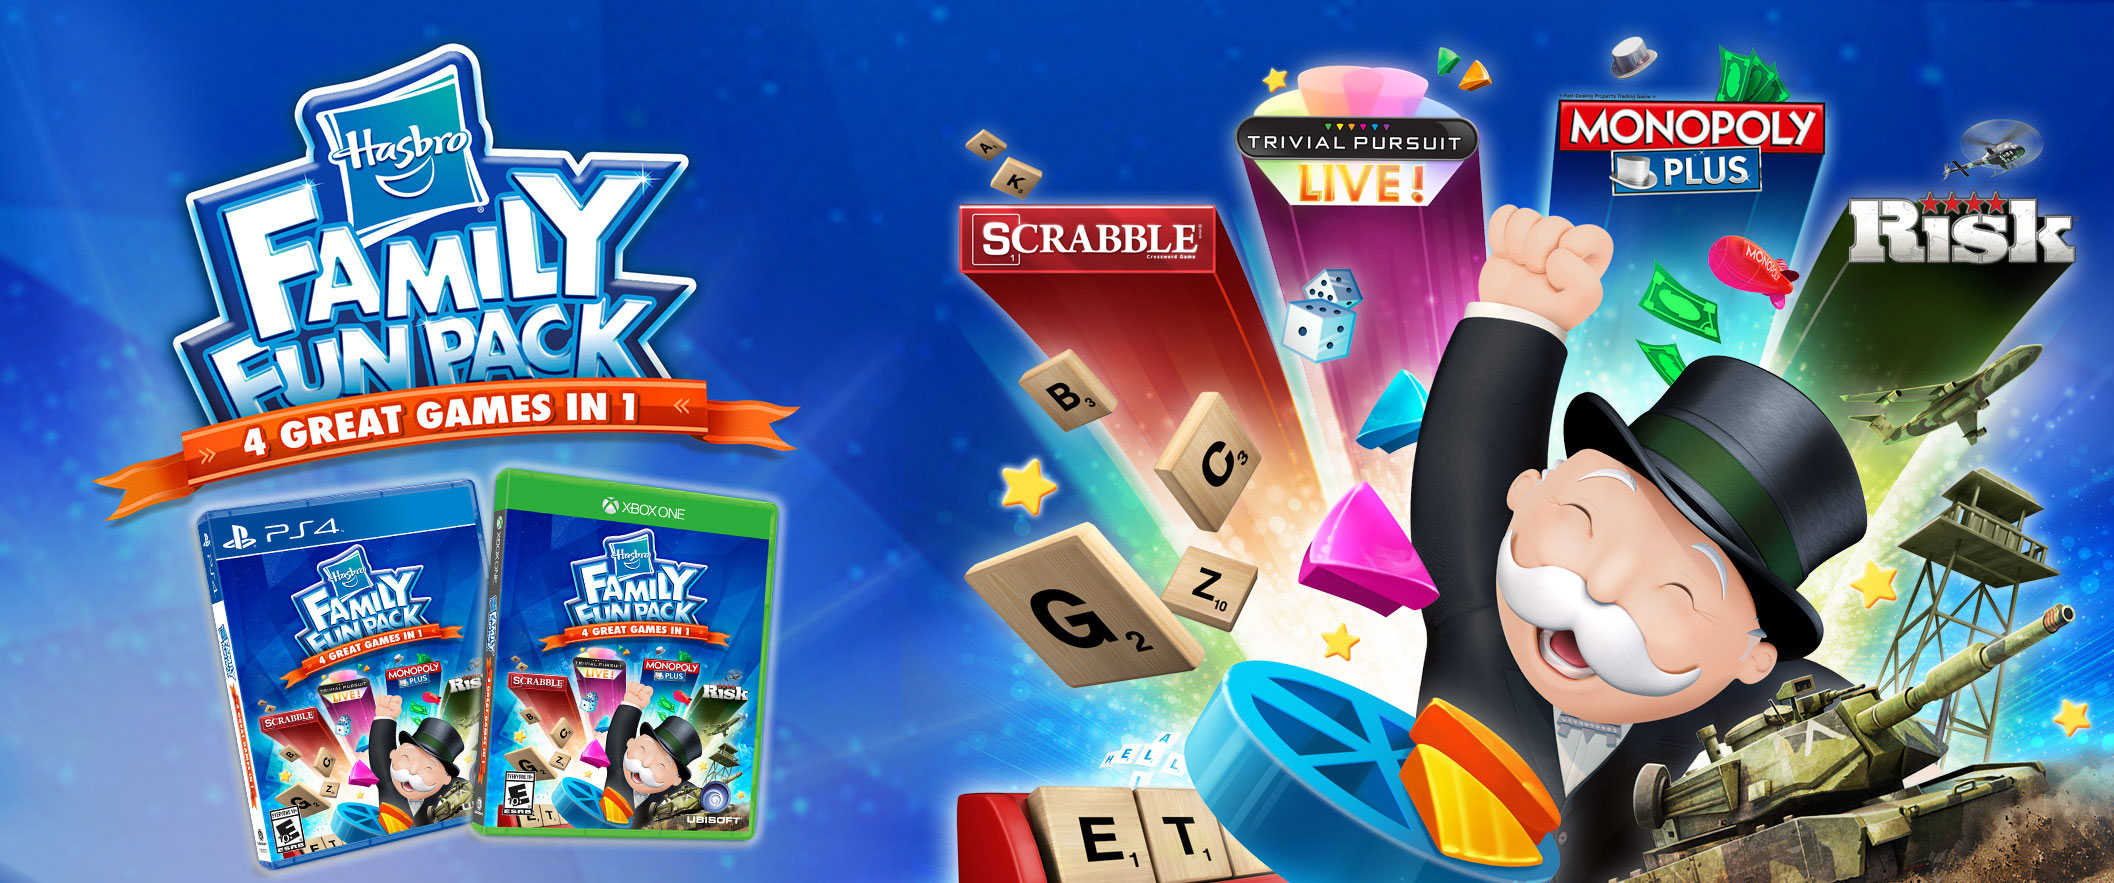 Hasbro Game Channel Video Image